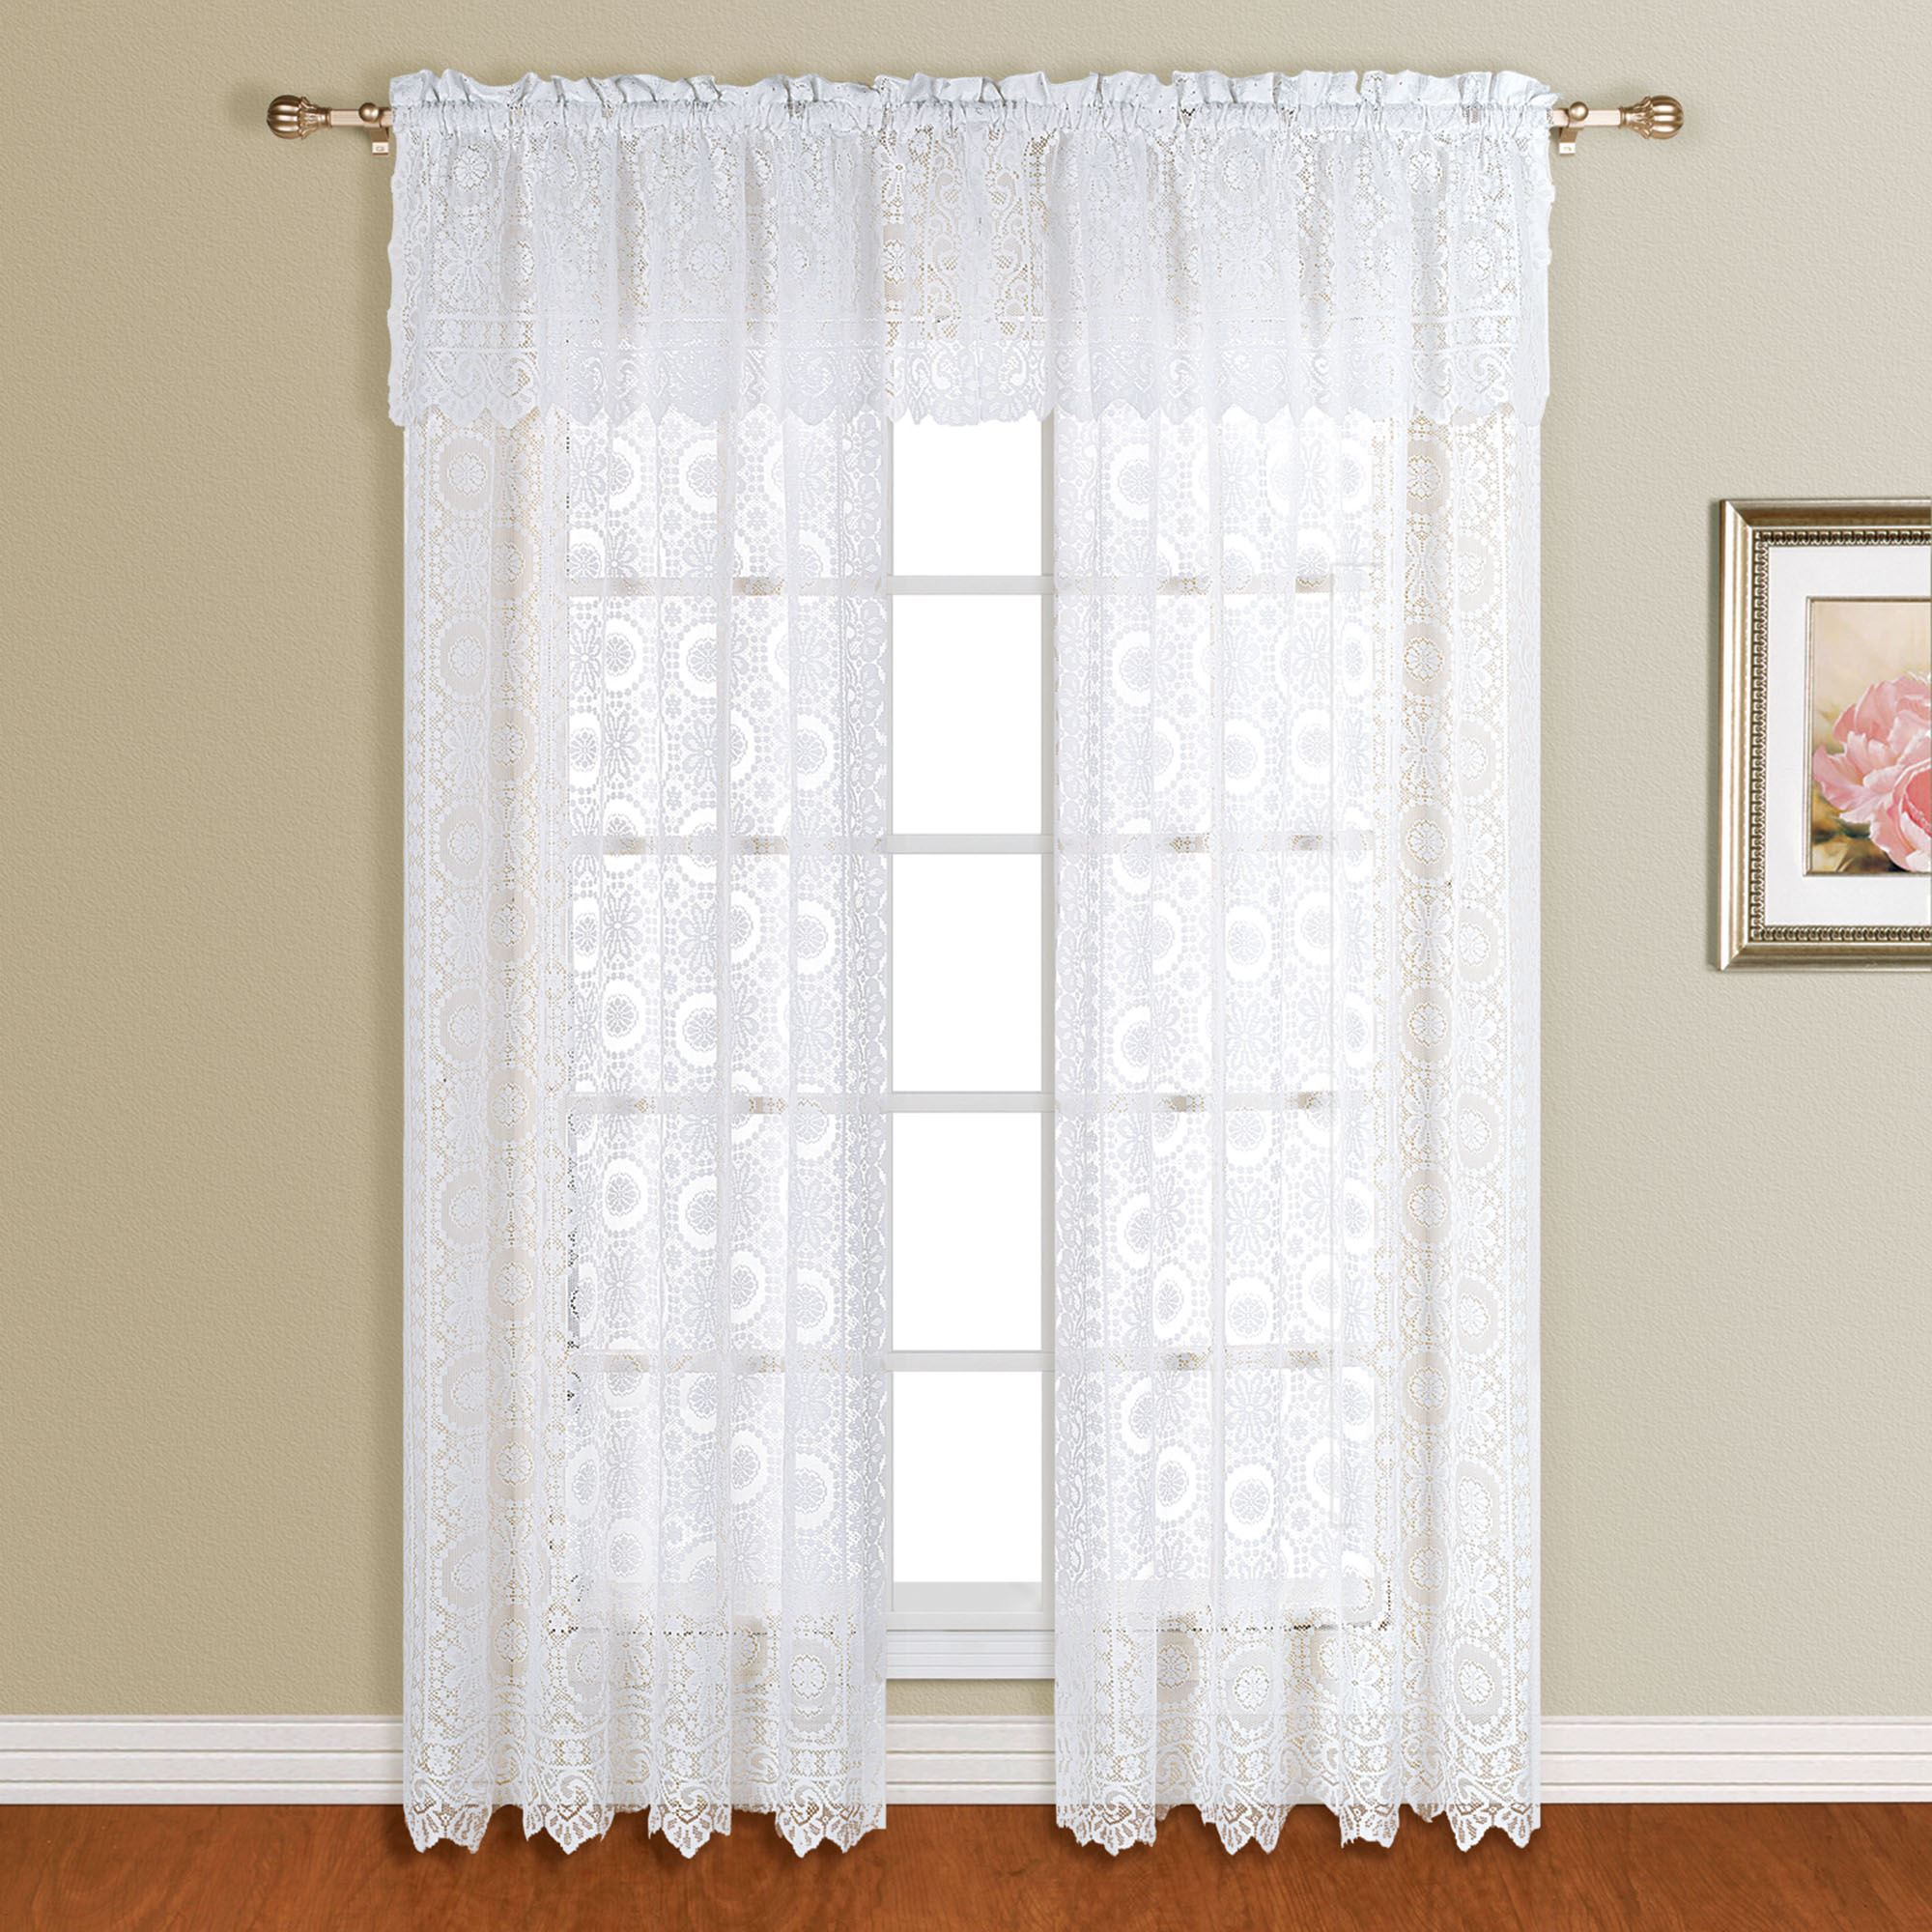 curtain white embroidered b curtains treatments hei window drapes anthropologie and gretta